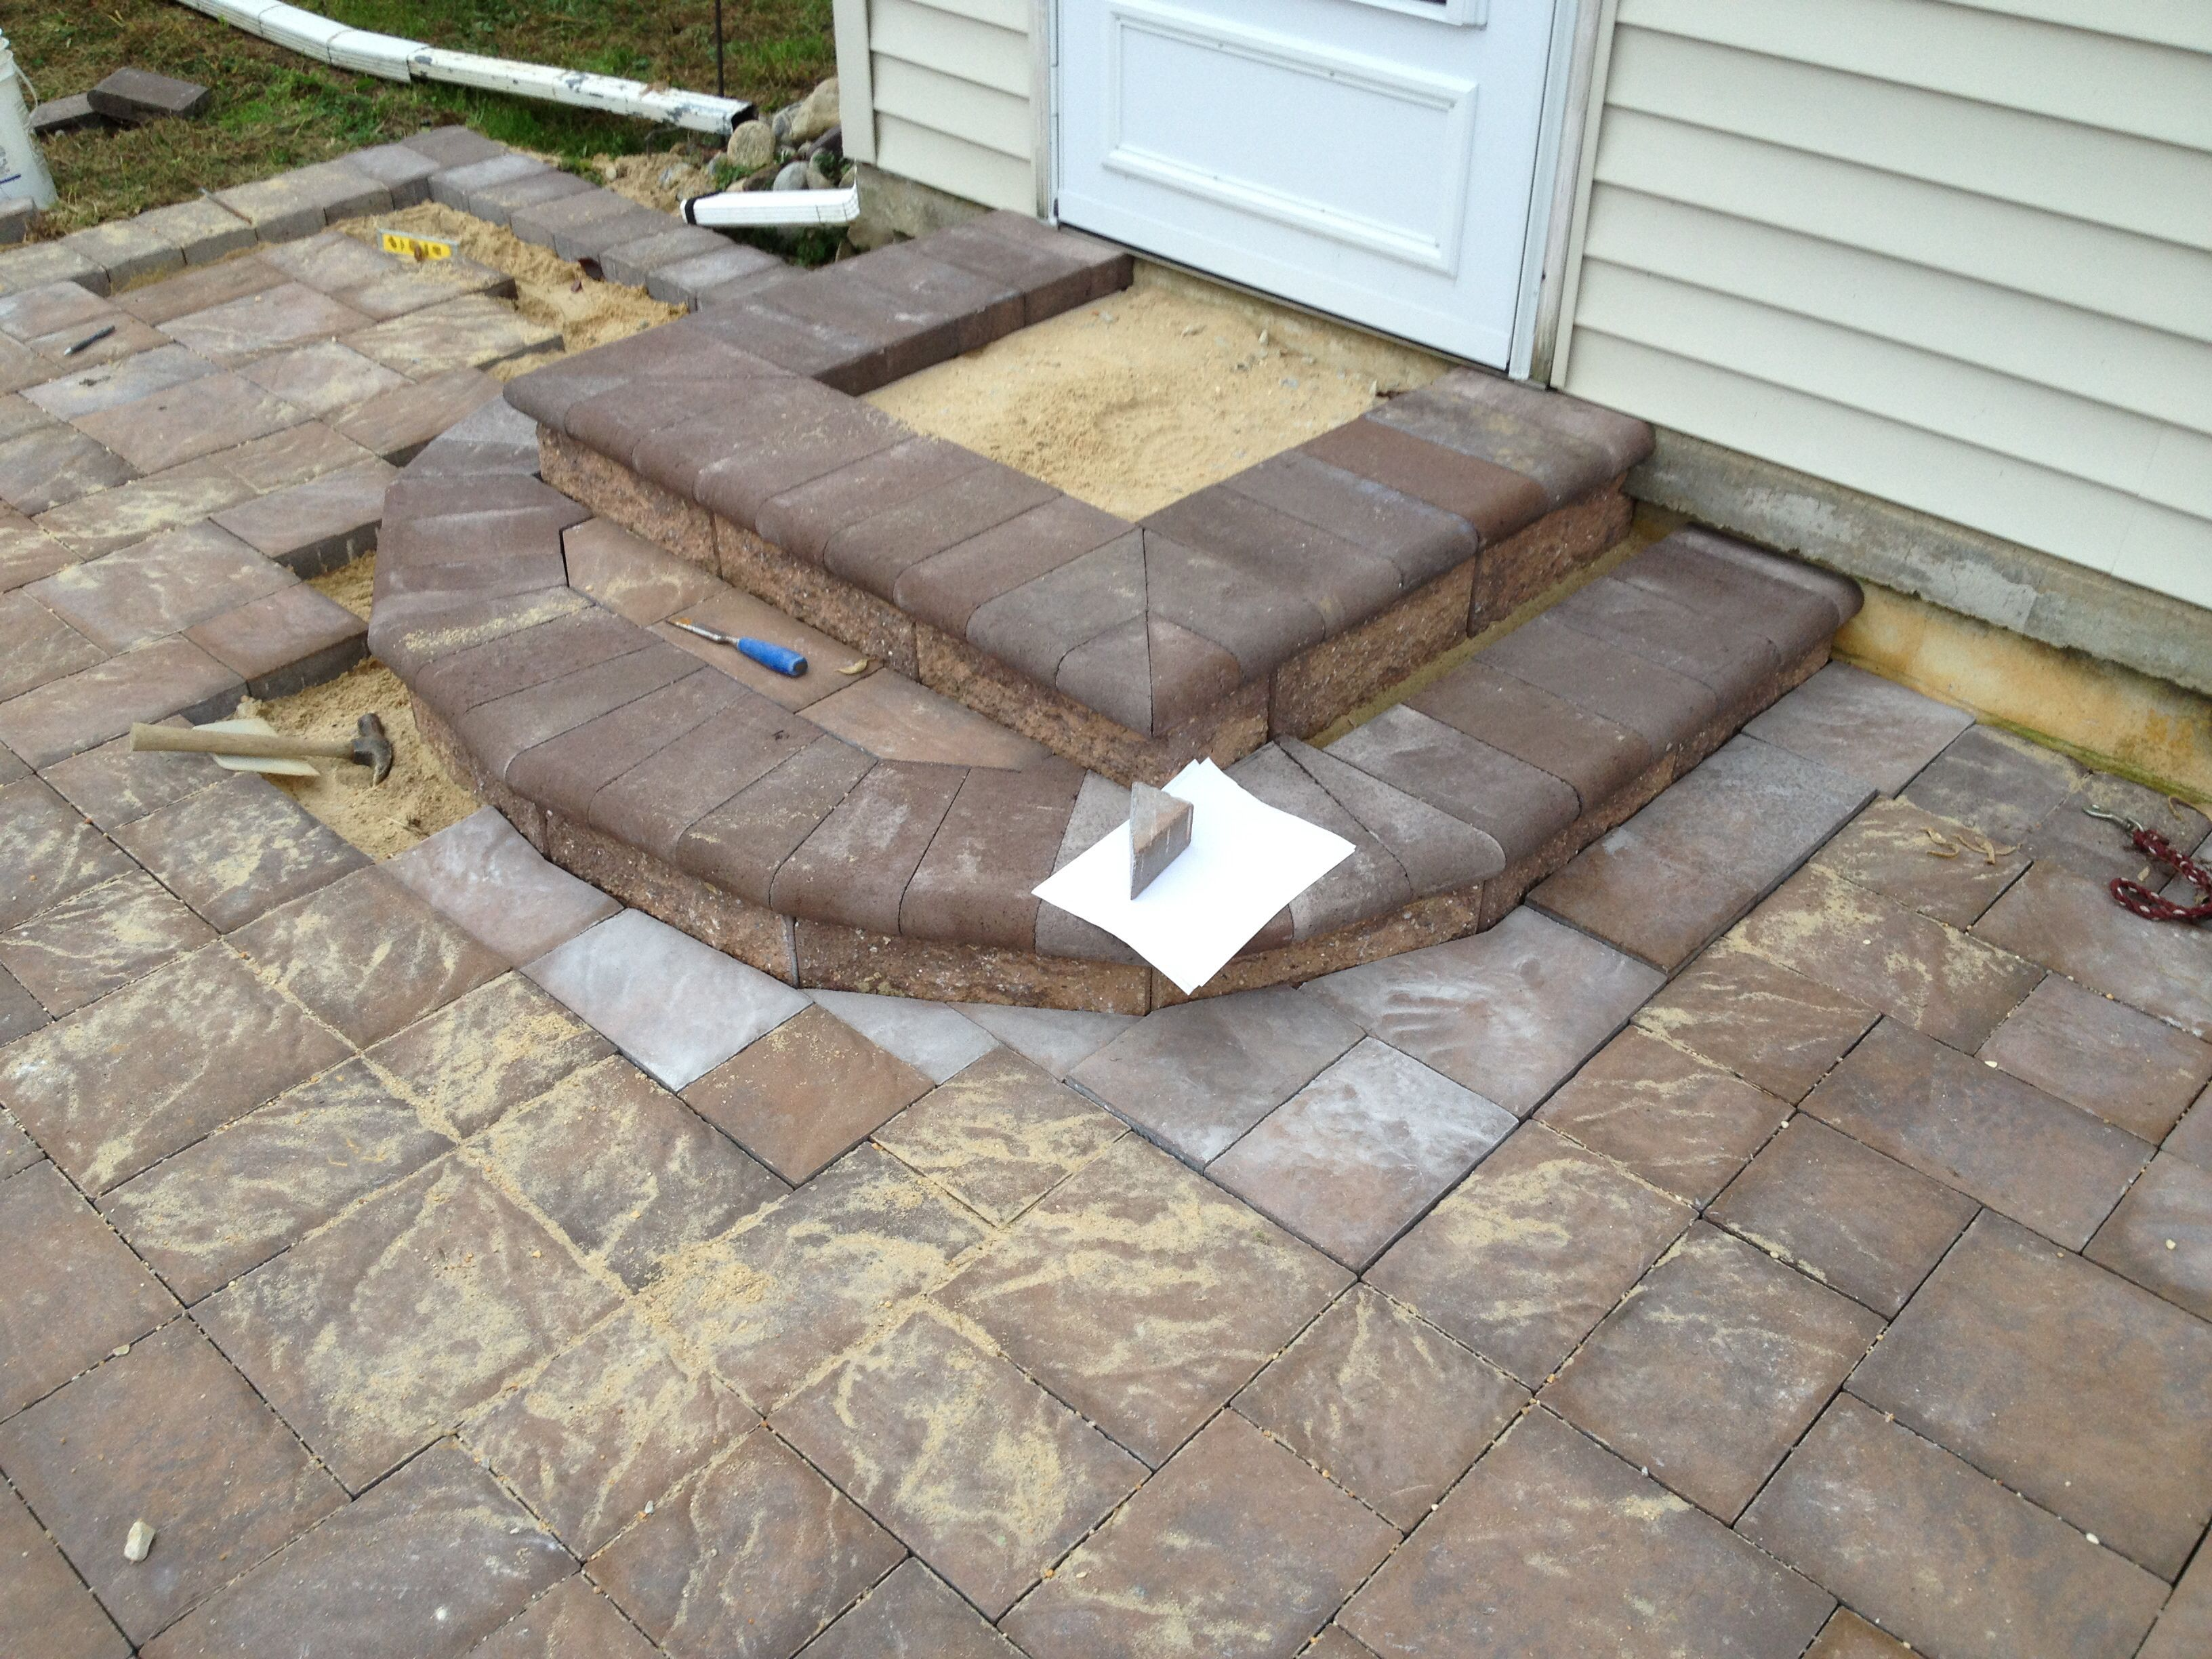 How to build steps with pavers - Patio Pavers Last Step Is To Build Steps B I M Built It Myself Pinterest Patio